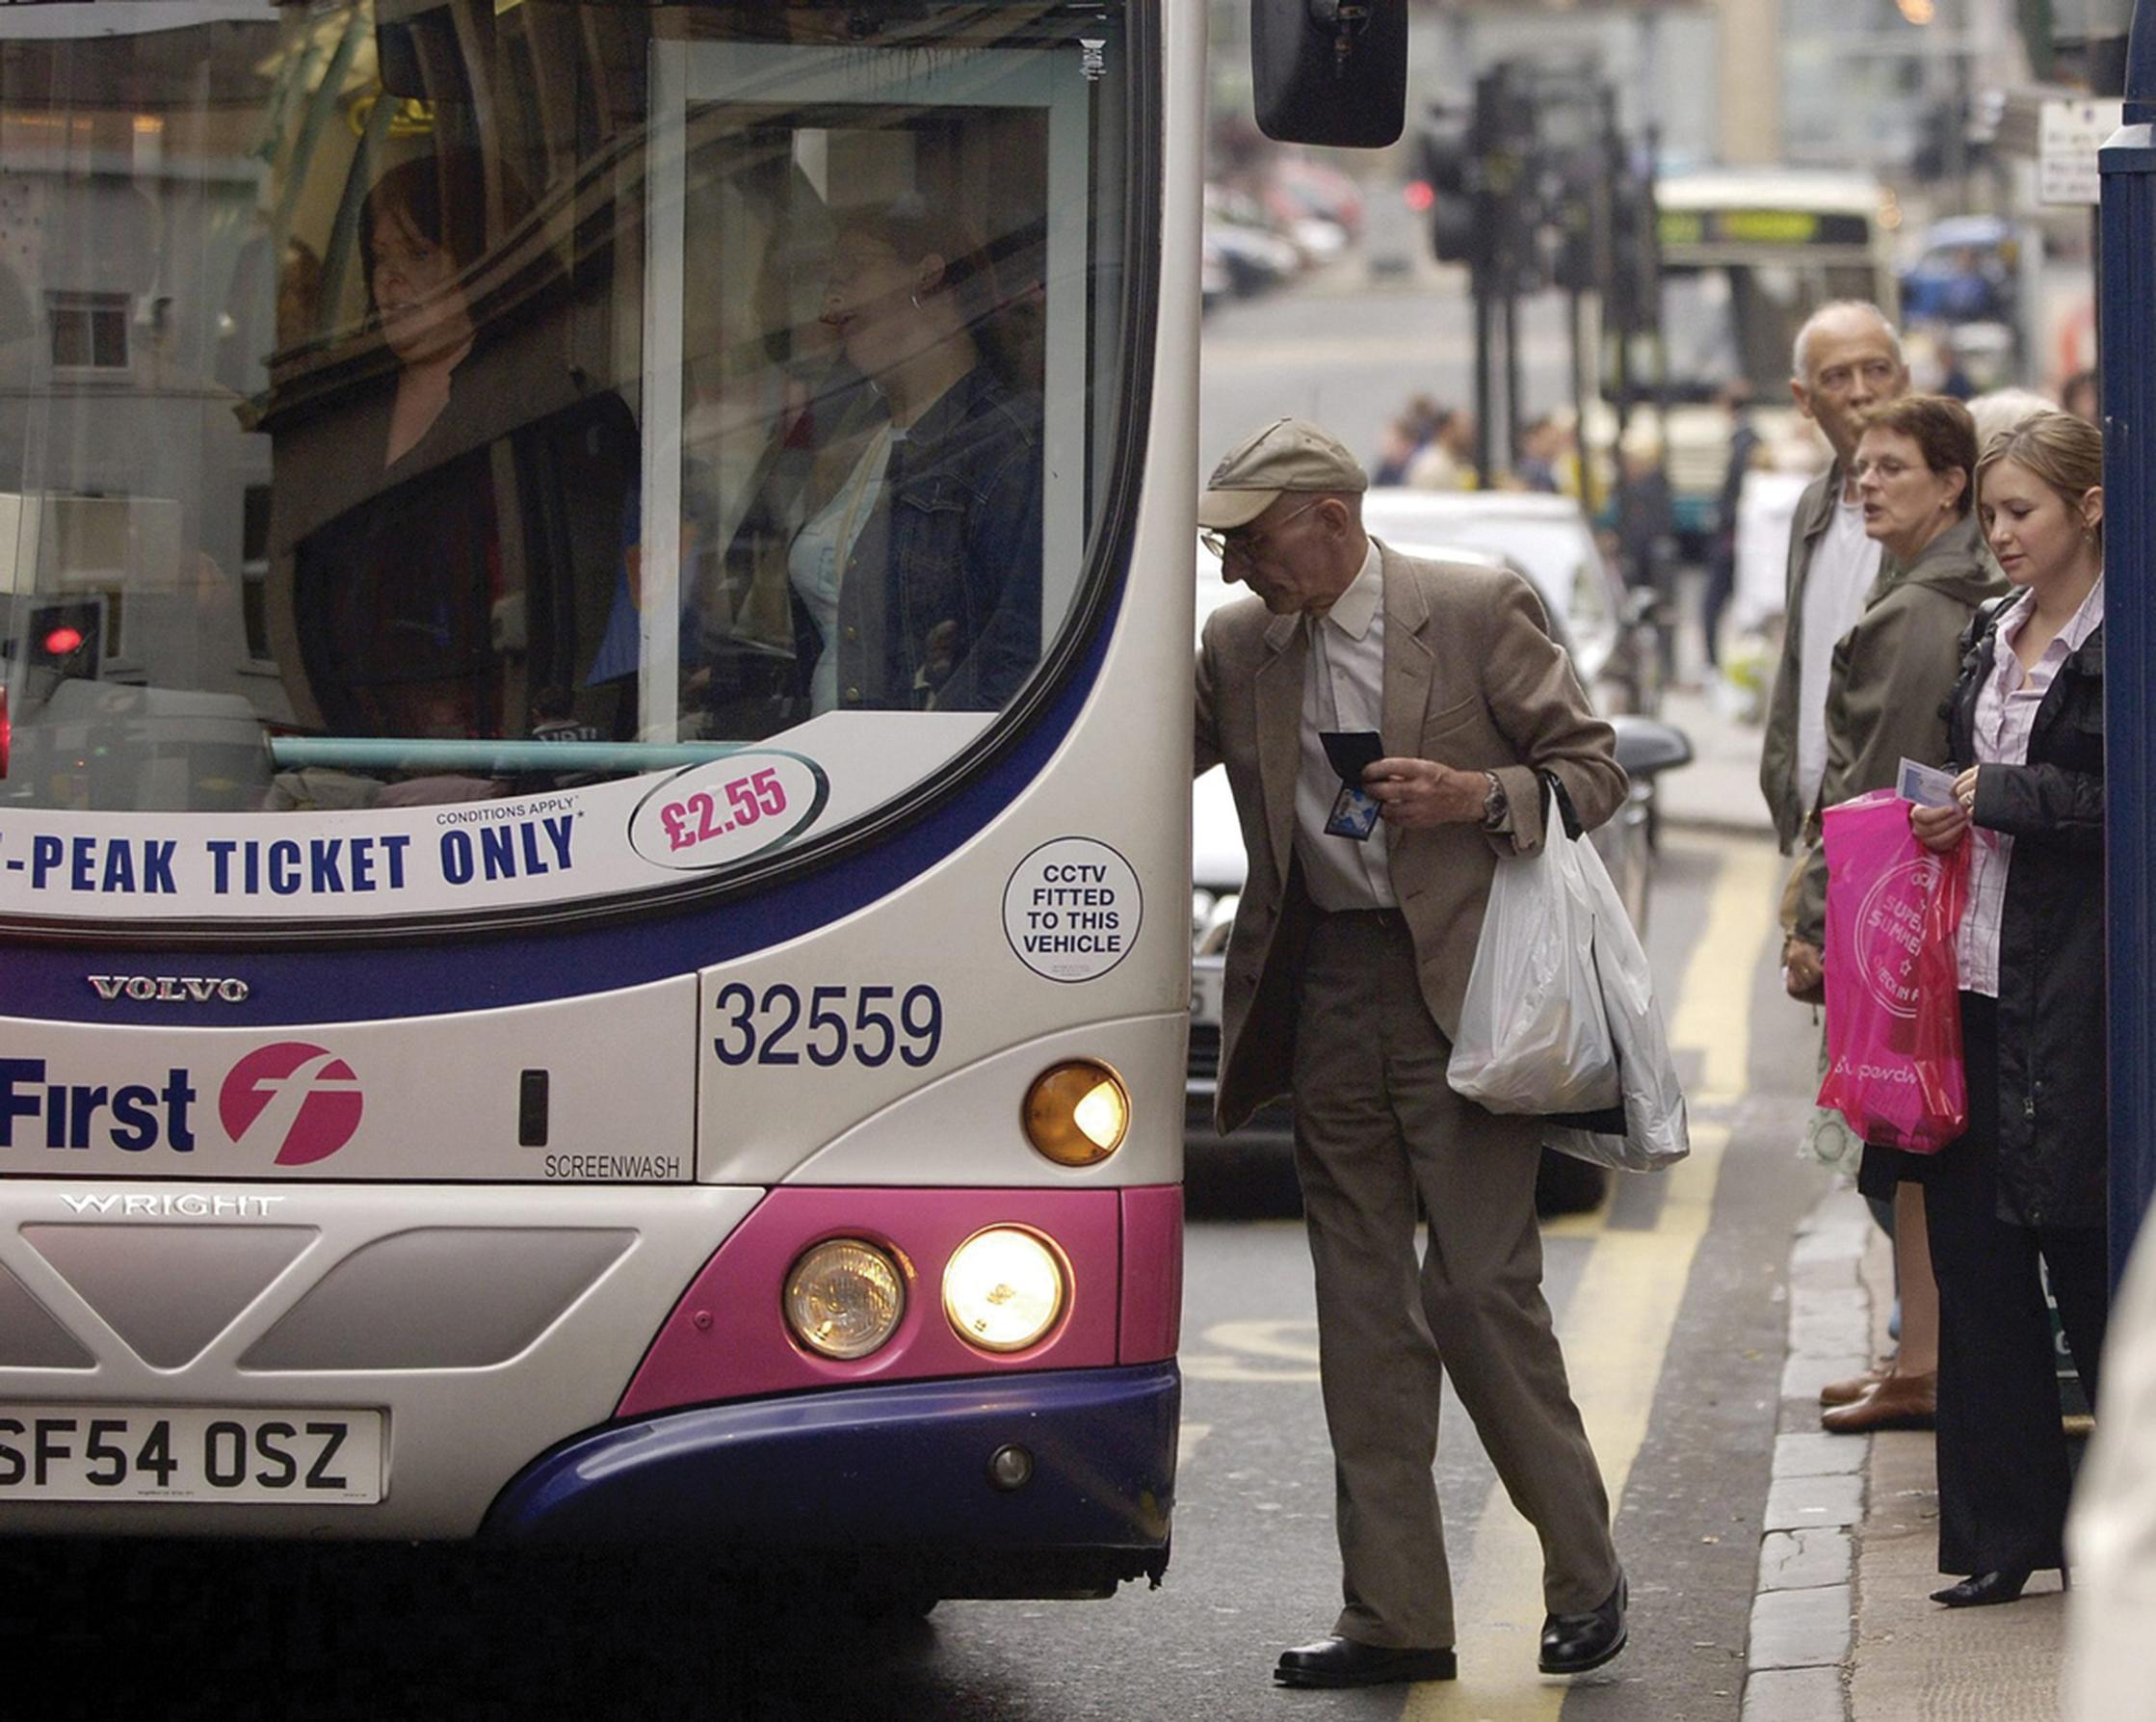 The concessionary travel scheme for older people and the disabled should be replaced by a UK-wide multi-modal travelcard for all, with extra discounts for particular groups, says John Disney